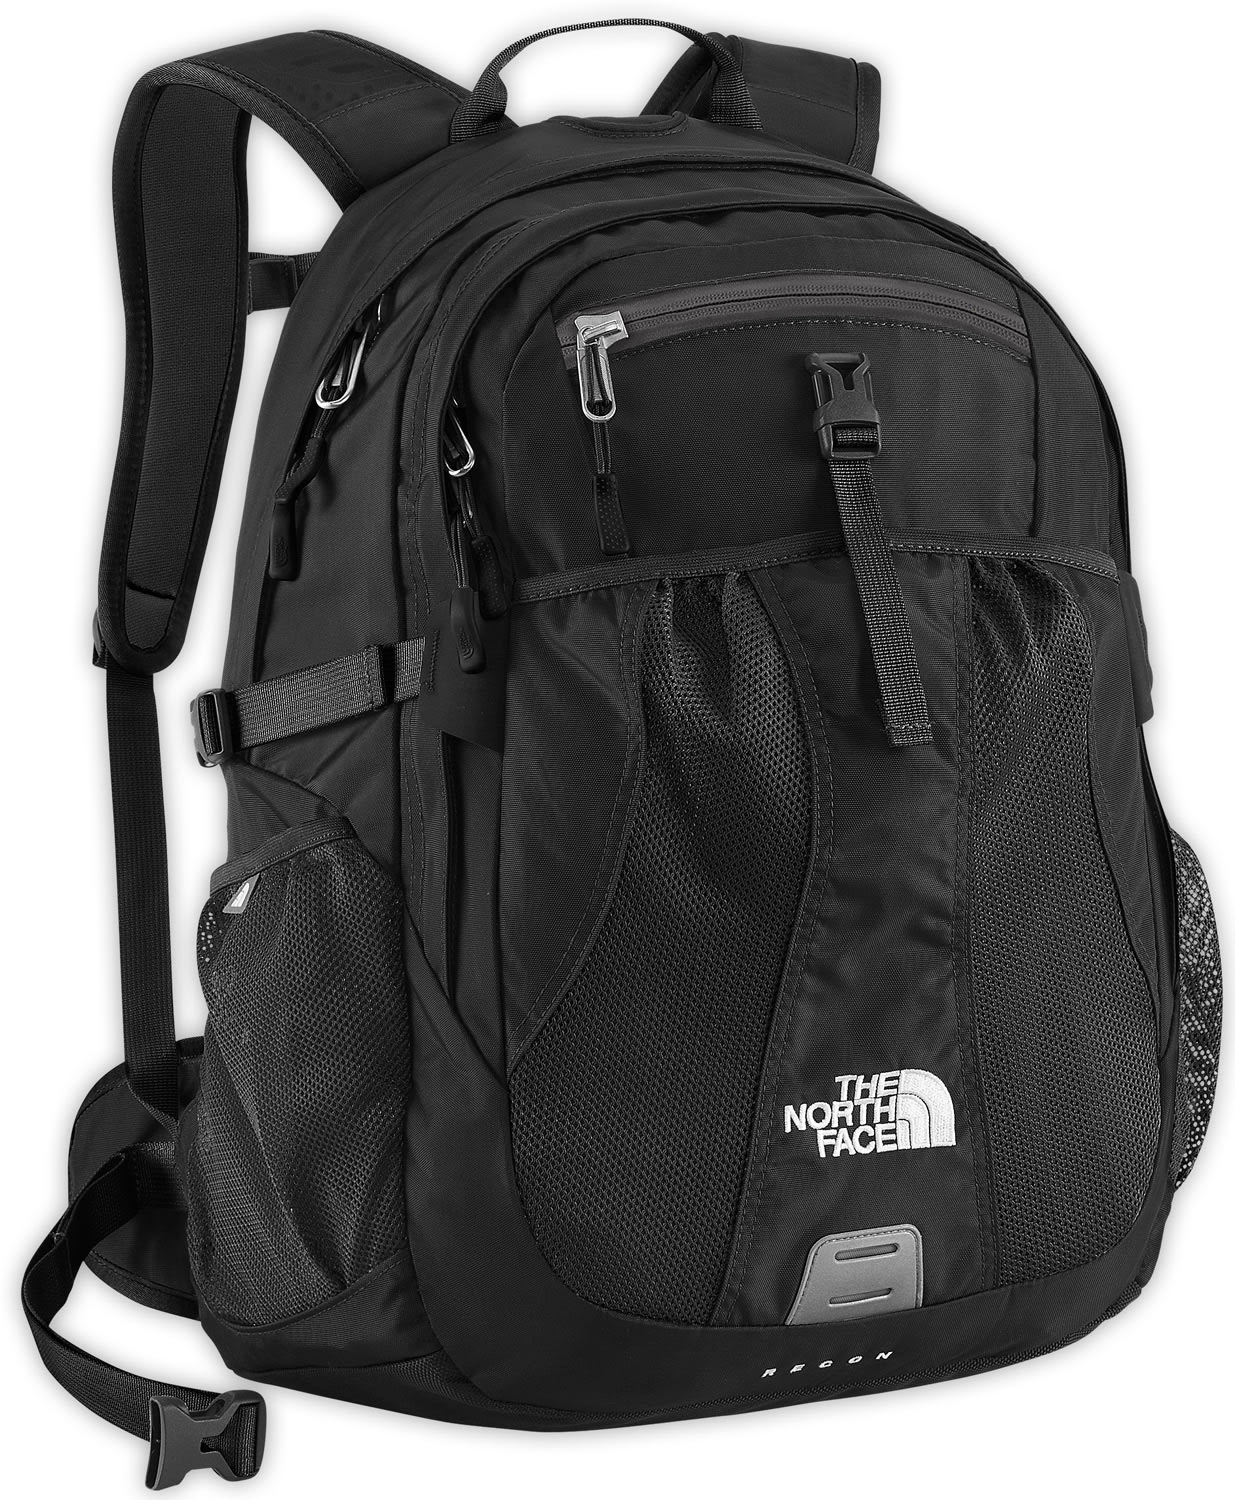 The North Face Recon Backpack TNF Black 28L